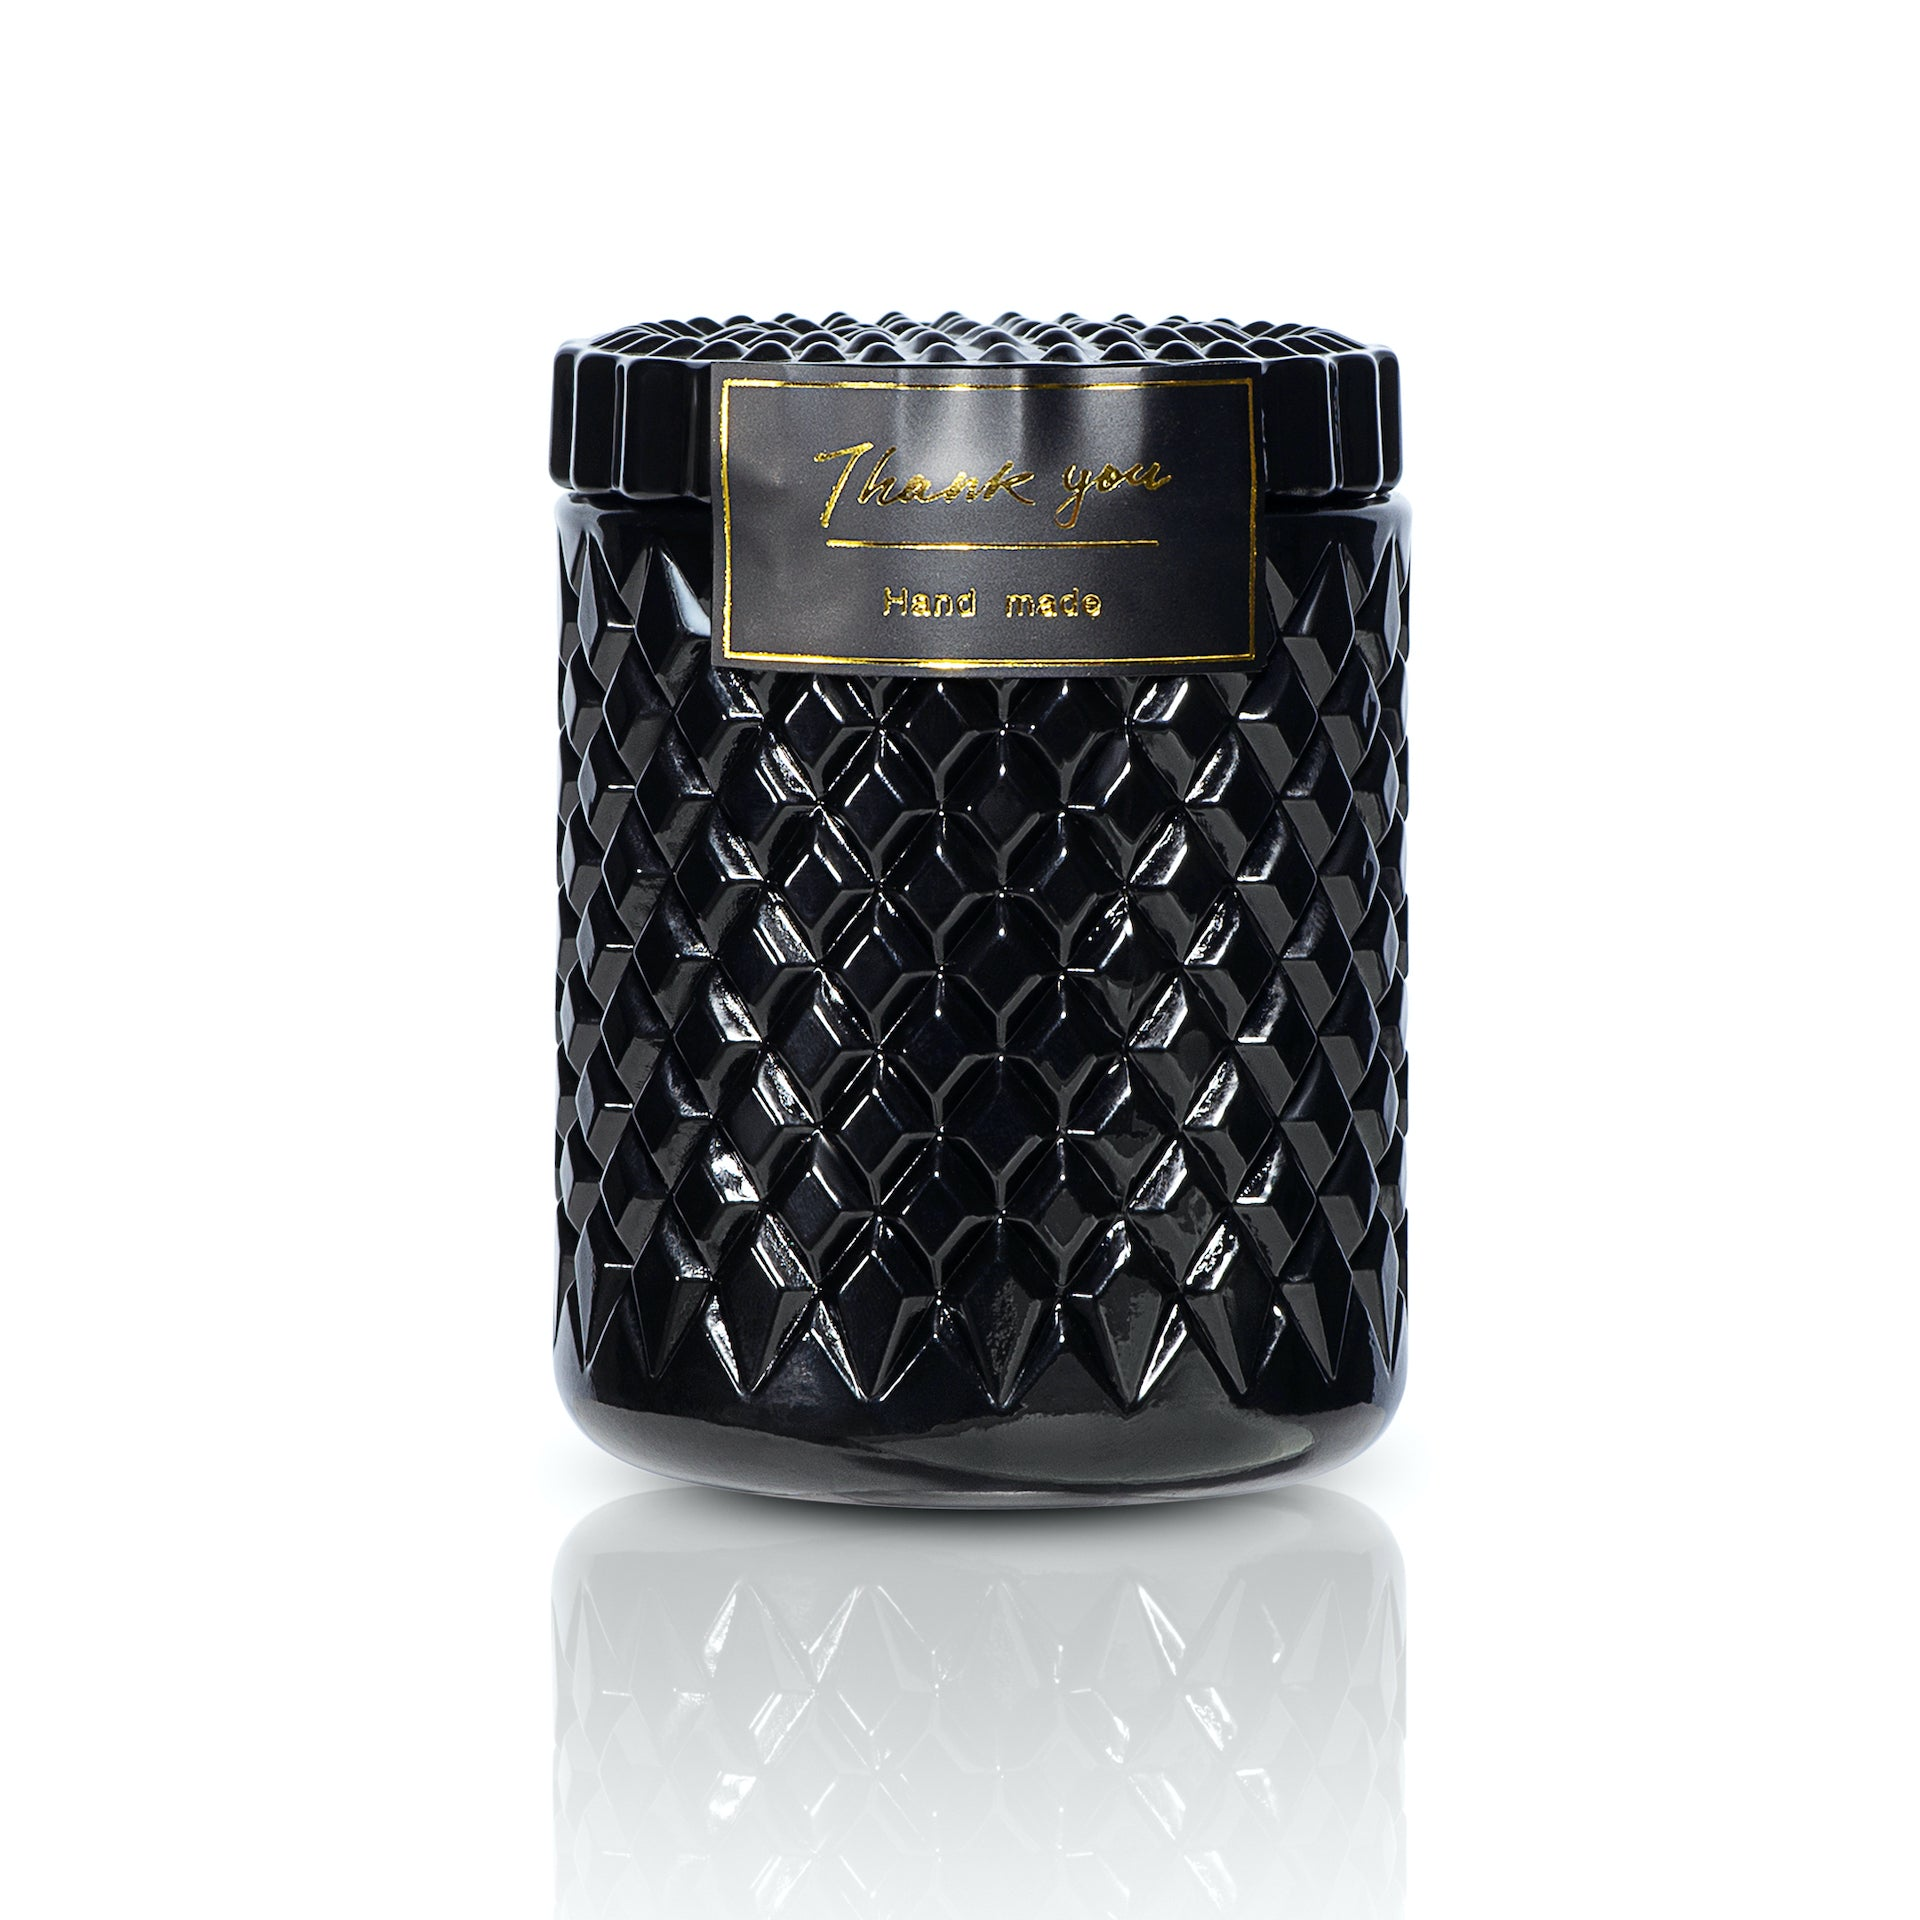 TIWI Amalfi Coast - A Luxury Candle